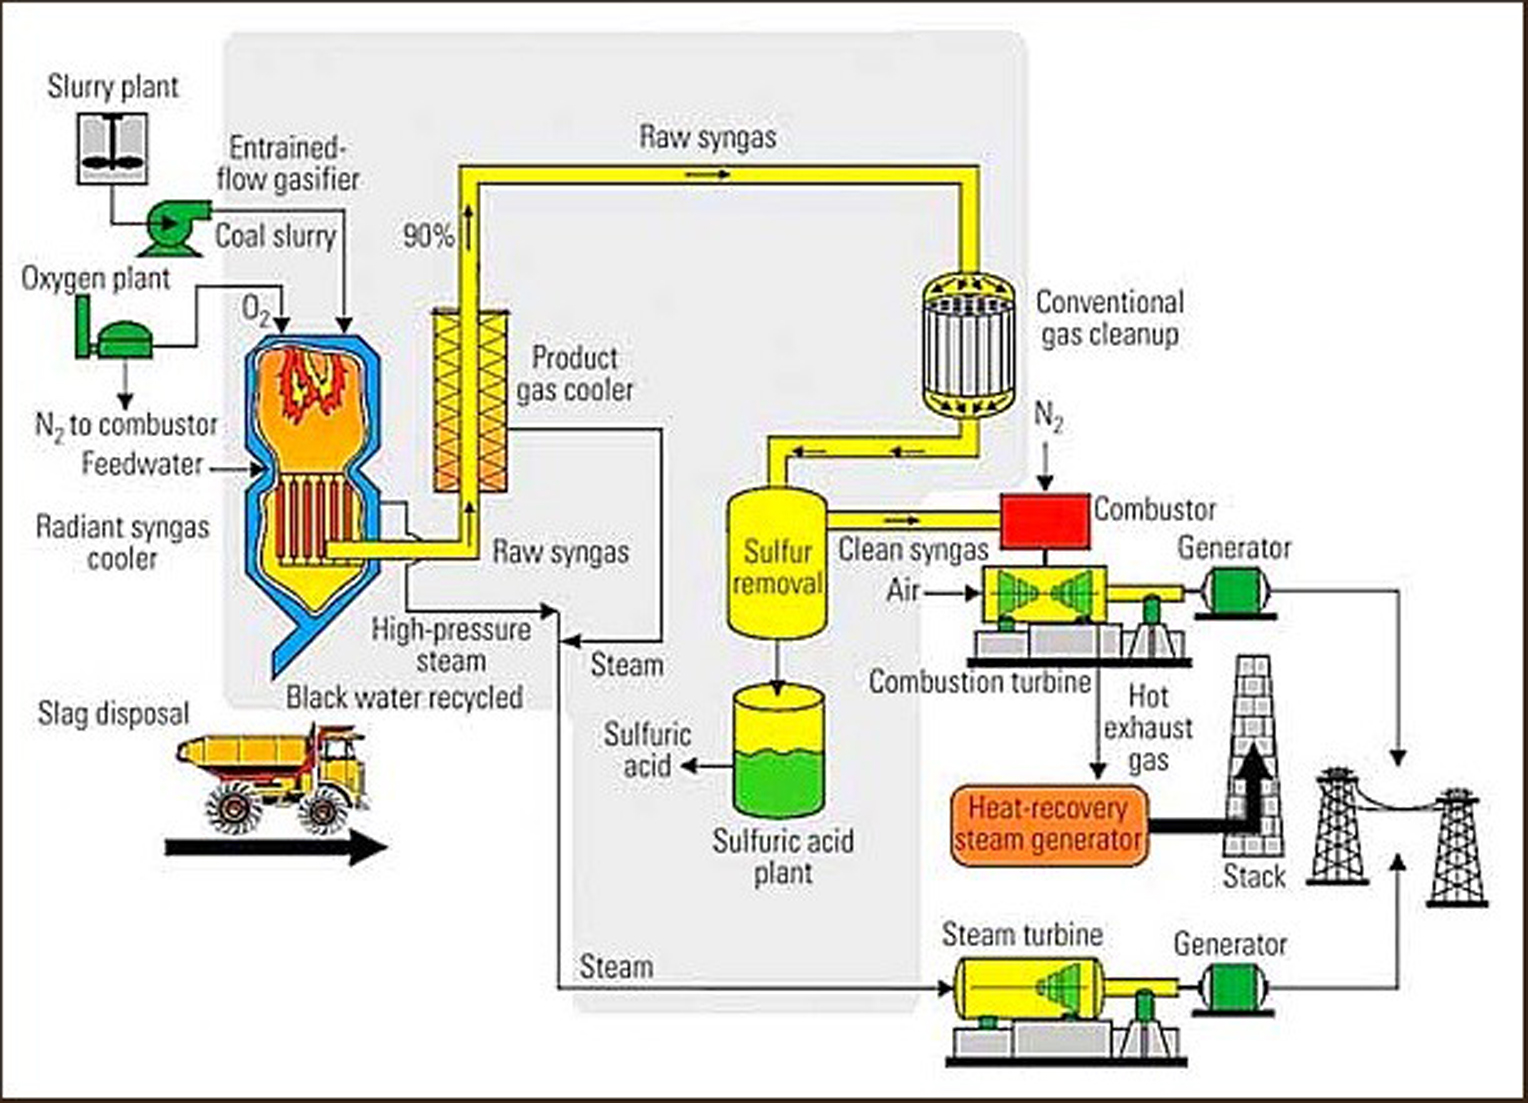 hight resolution of this is how a combined cycle plant works to produce electricity and captures waste heat from the gas turbine to increase efficiency and electrical output